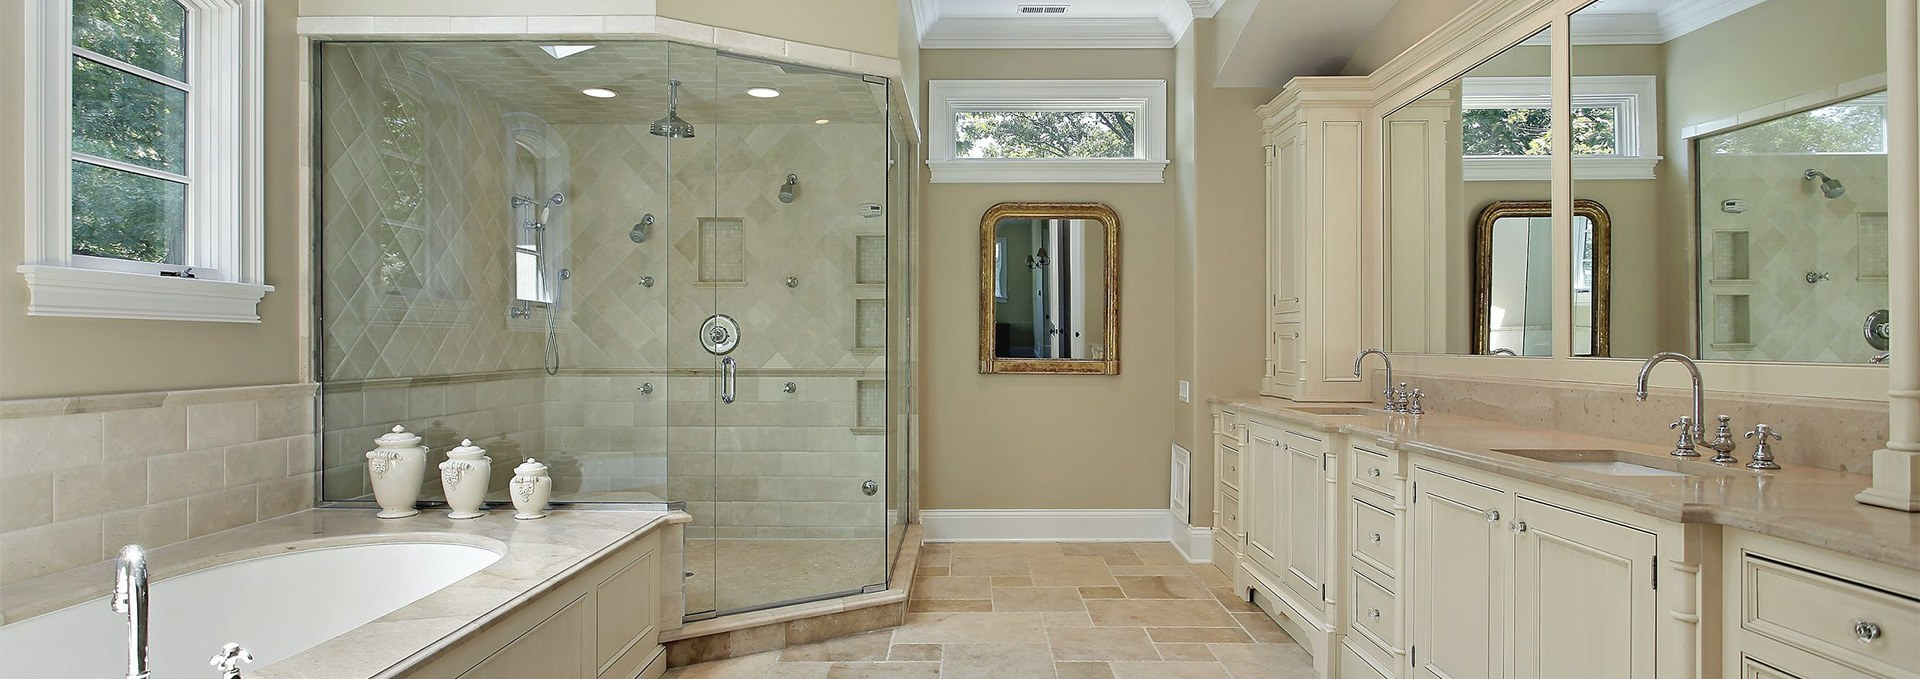 Shower Doors, Mirrors Installed in VA, MD, DC | Dulles Glass